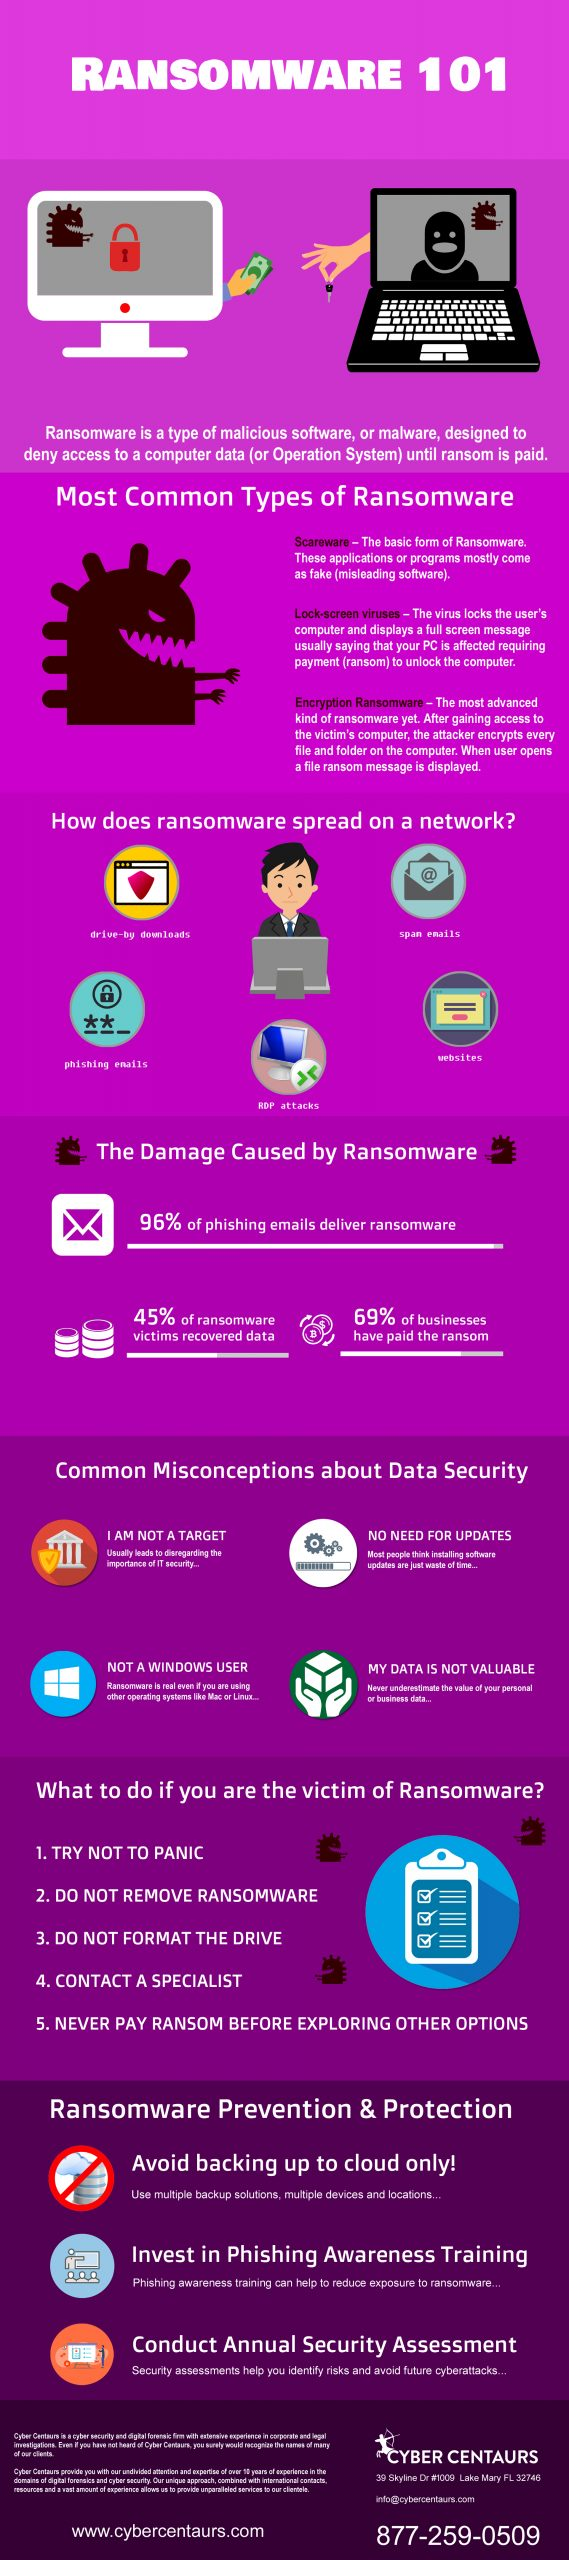 Ransomware101-infographic